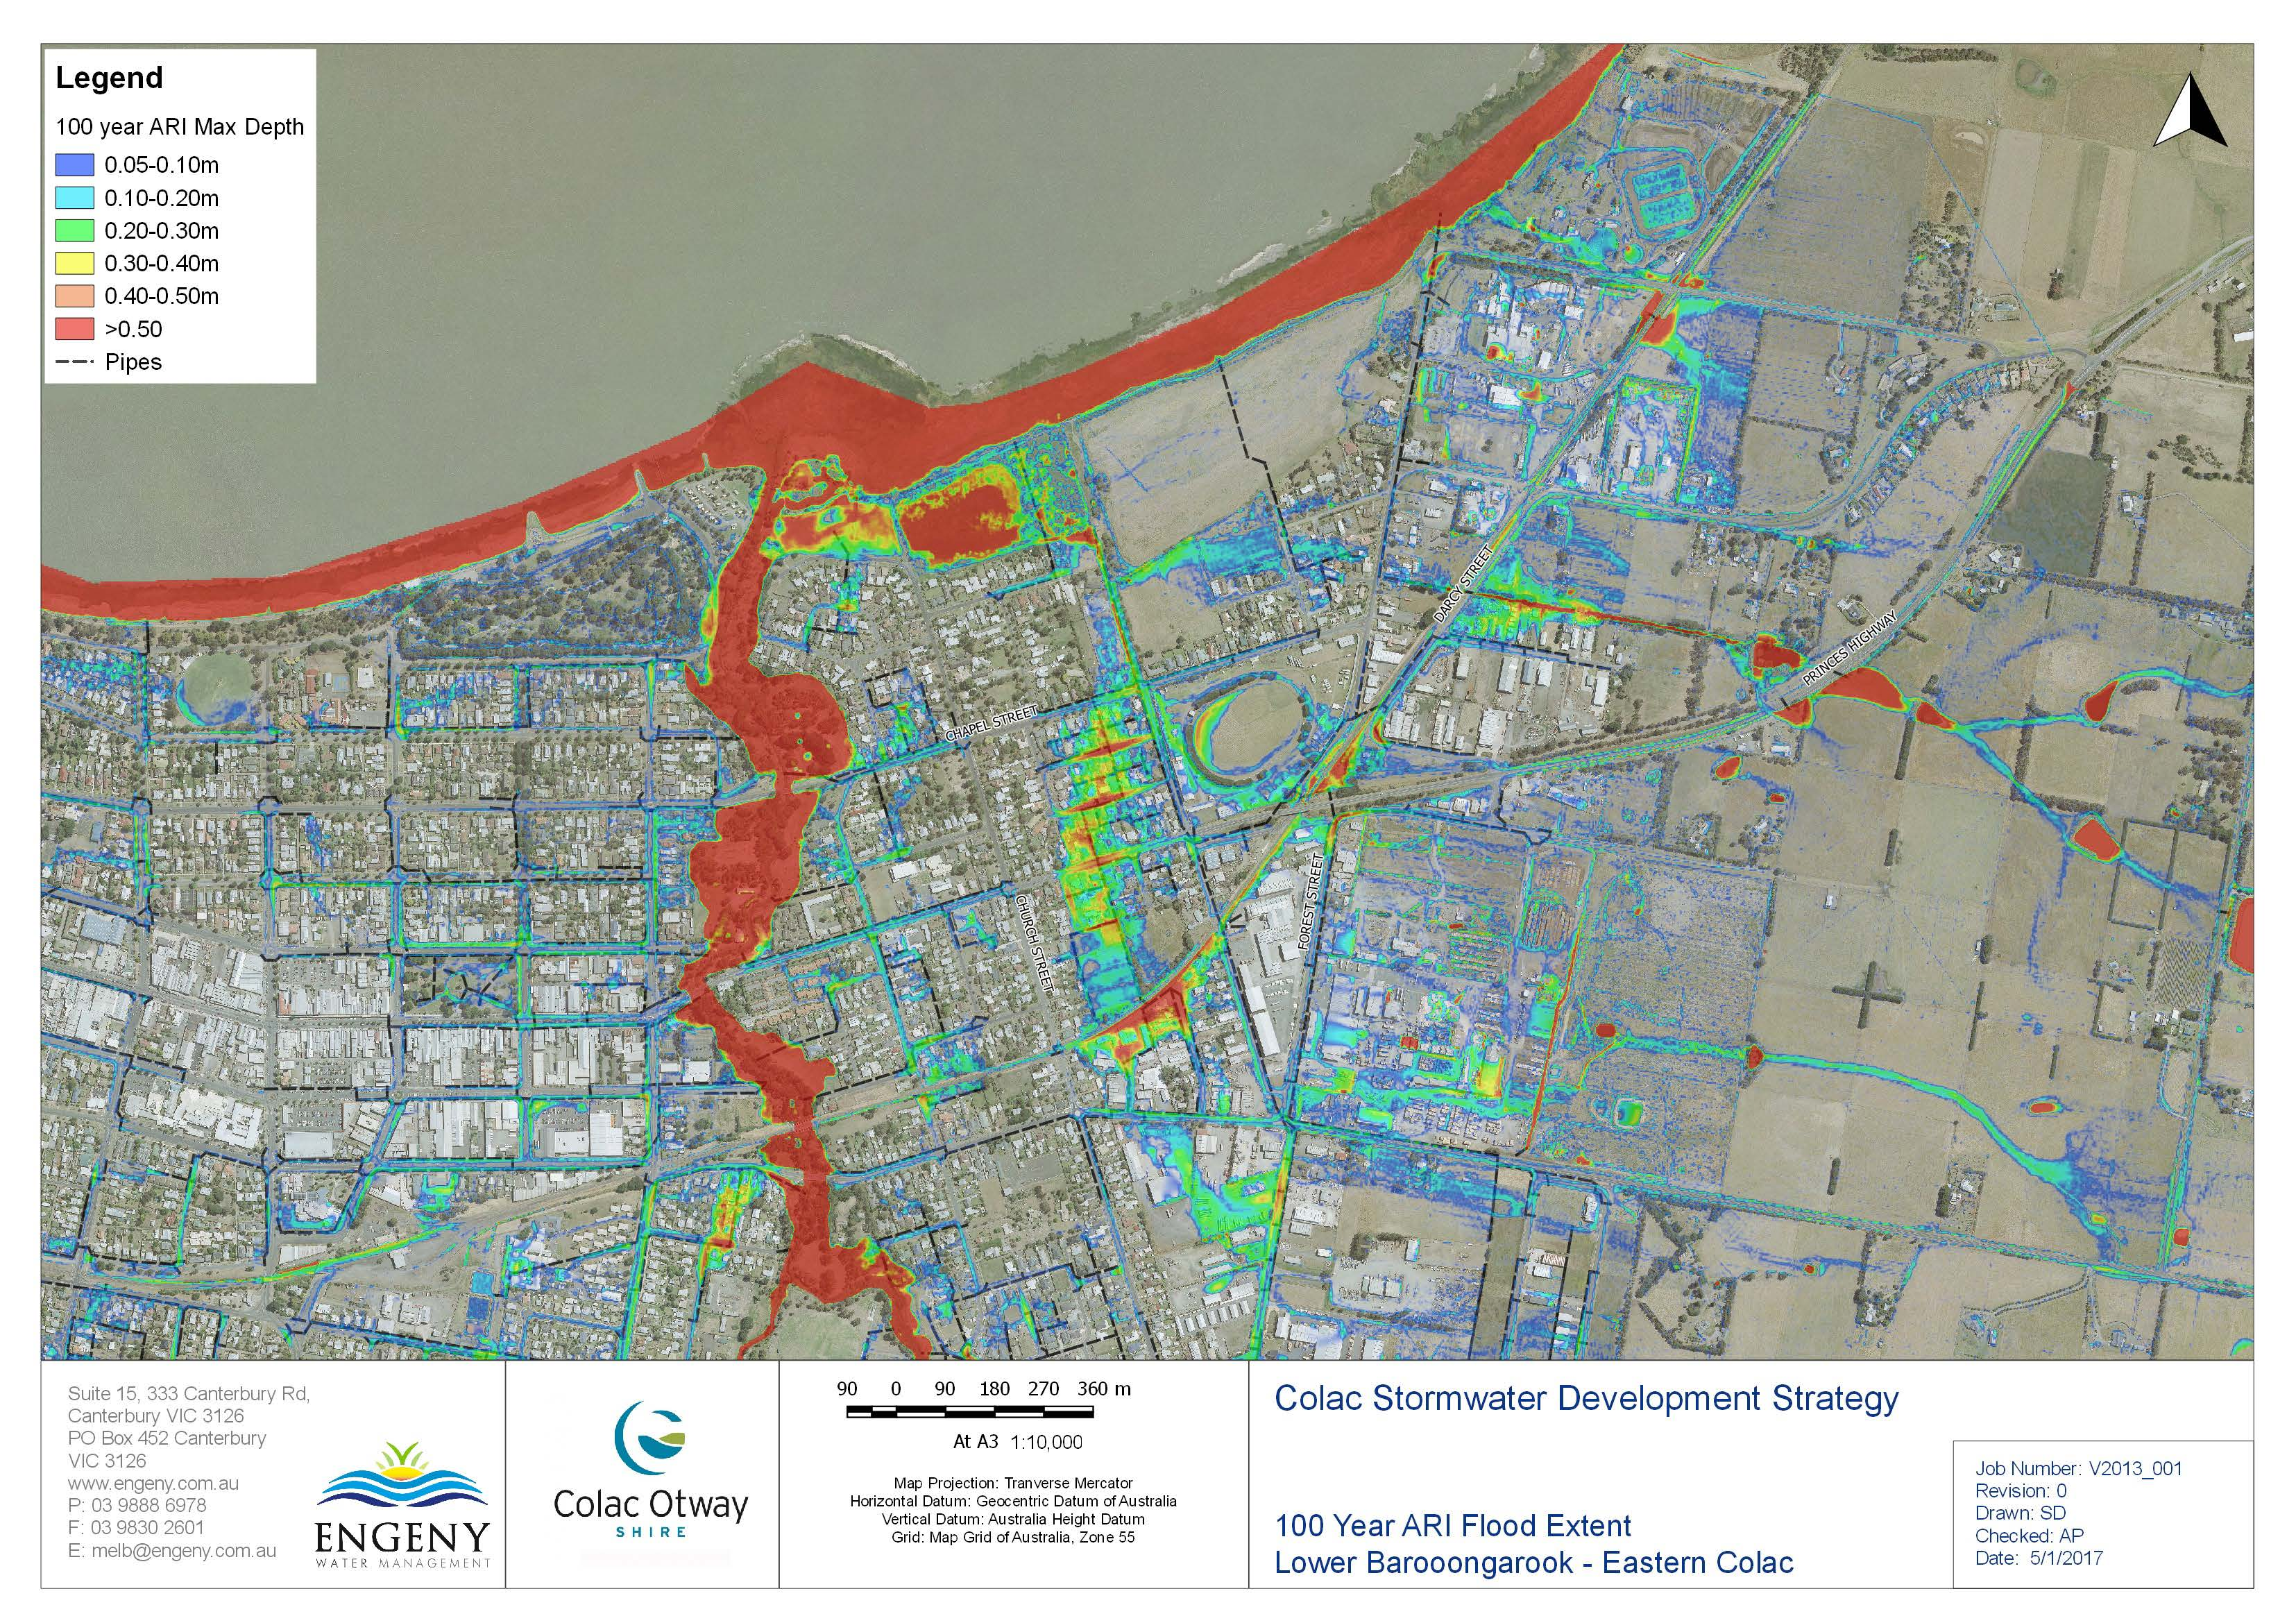 Council Needs Communitys Help To Check Flood Maps Colac Otway Shire - Flood check map